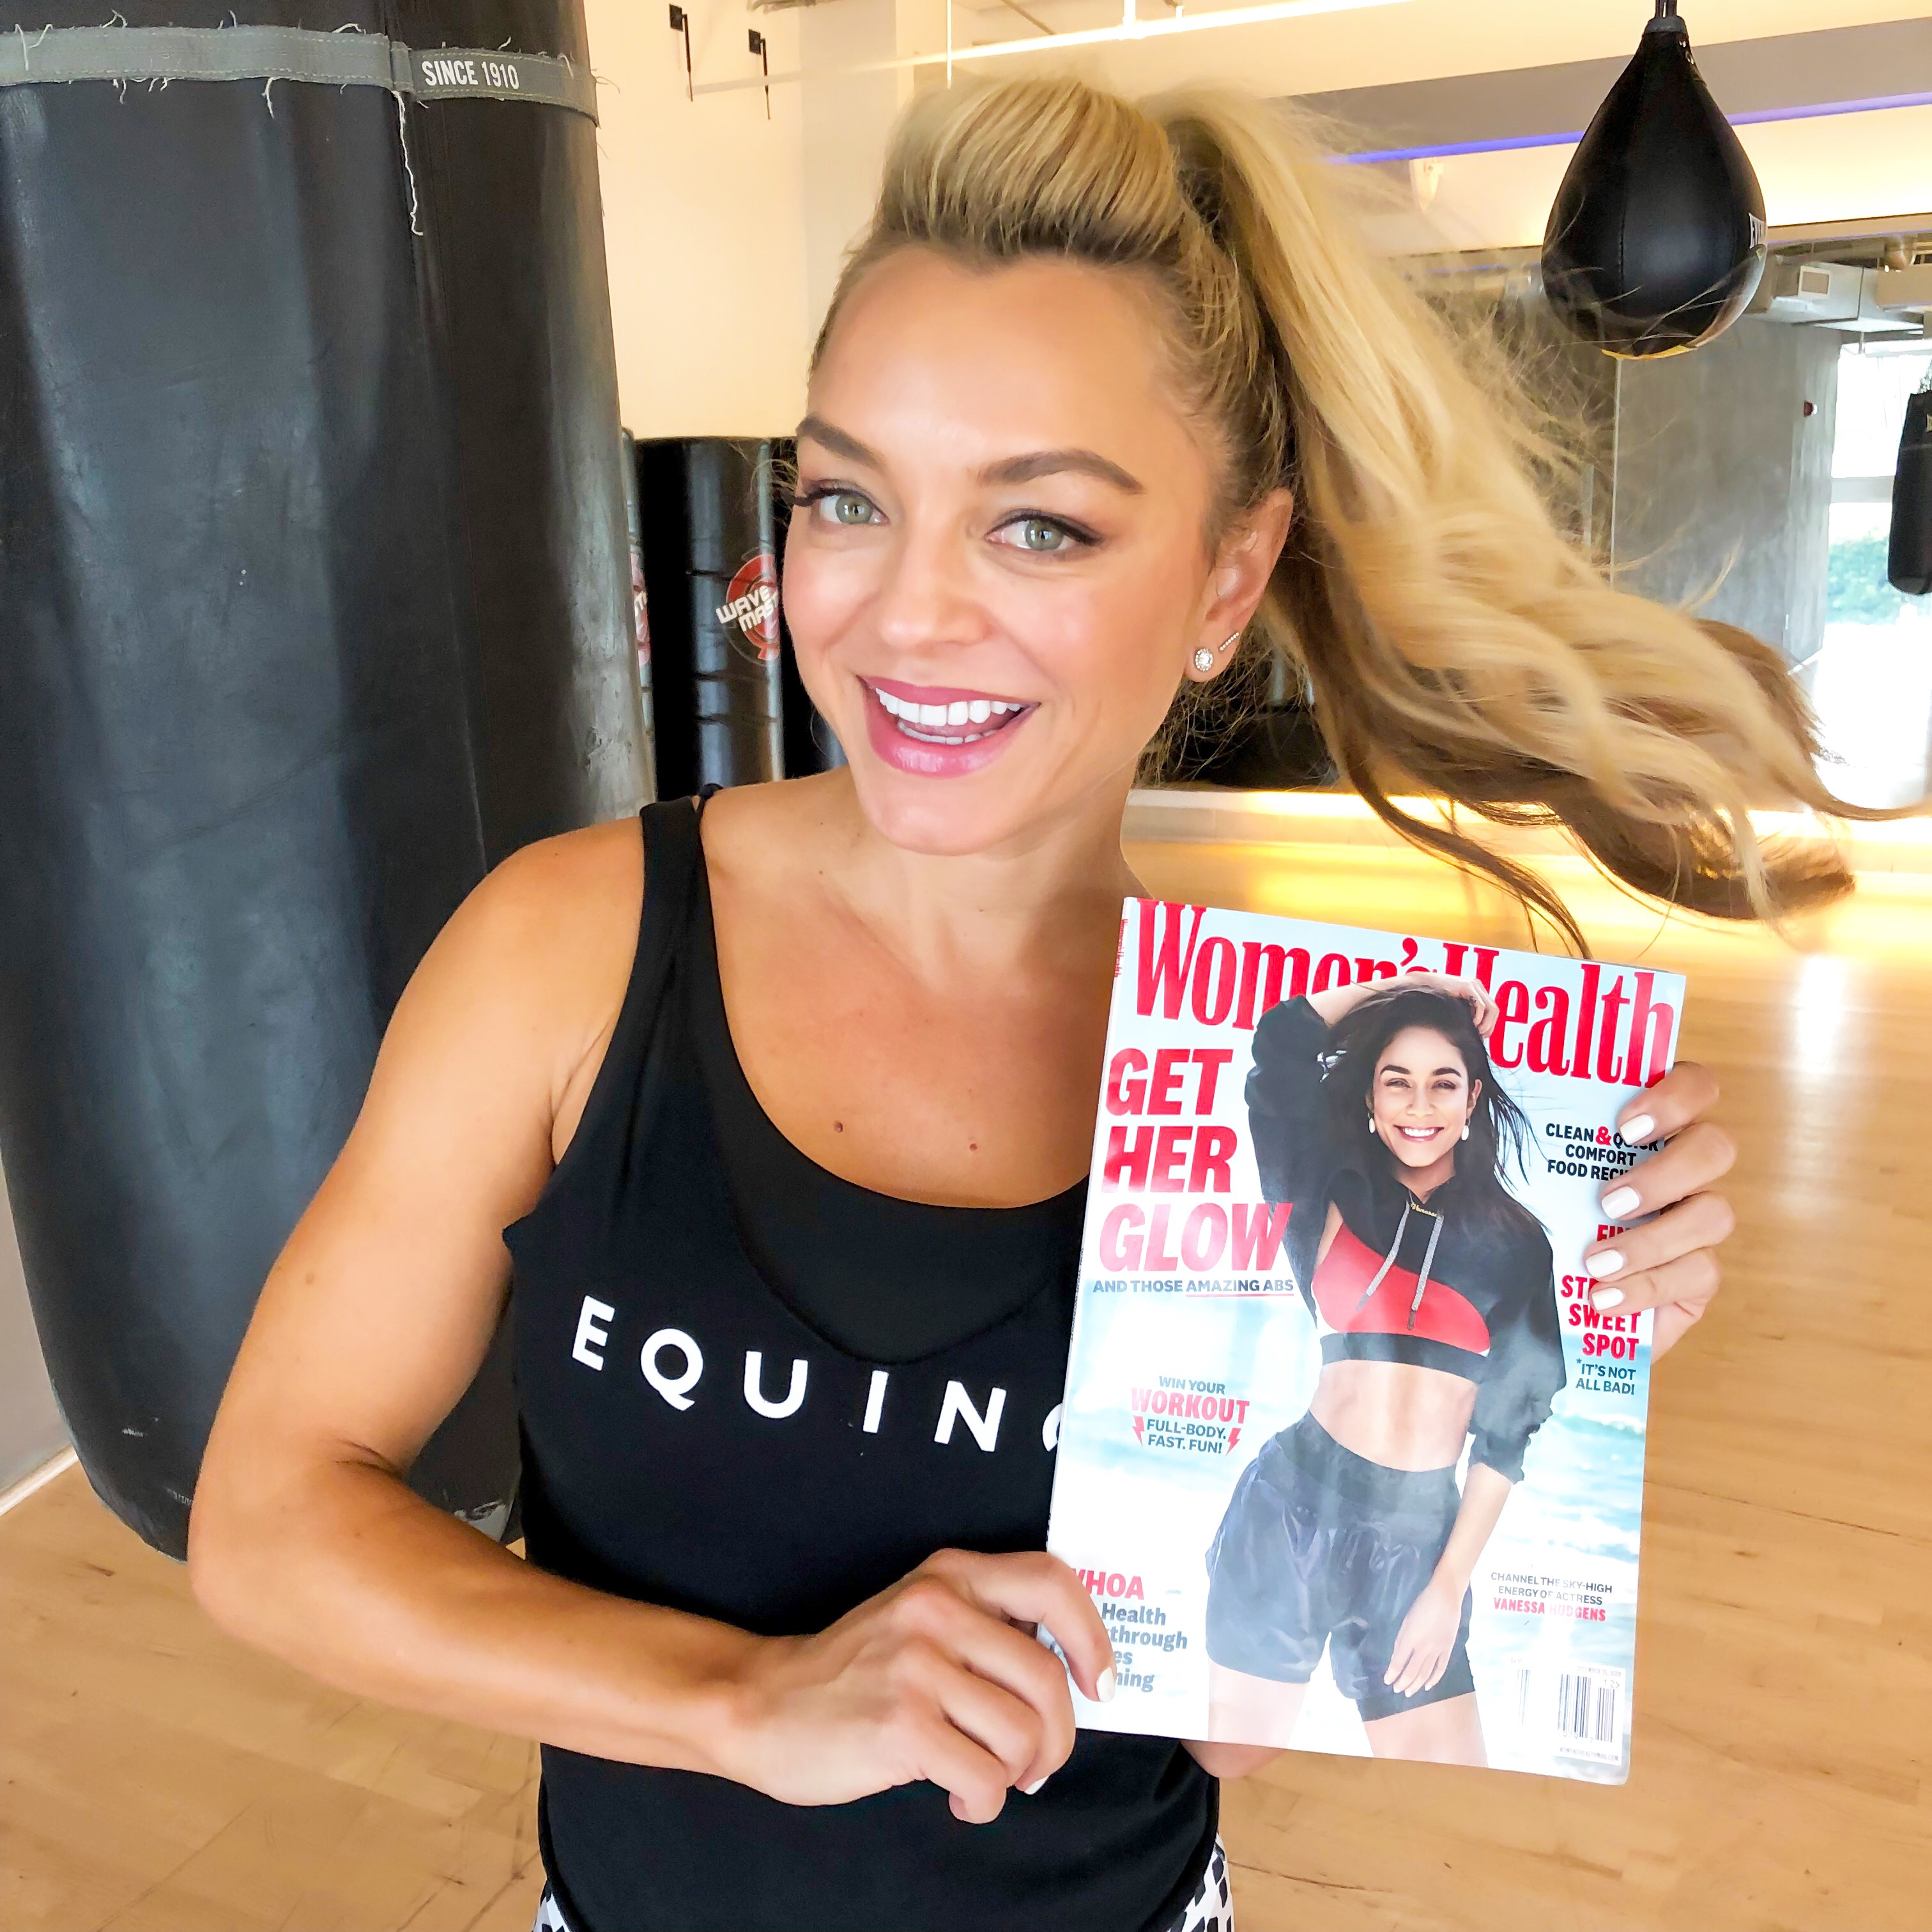 WOMEN'S HEALTH Magazine - December 2018 issue, Carrie Underwood swears by this jump rope workout for her iconic legs